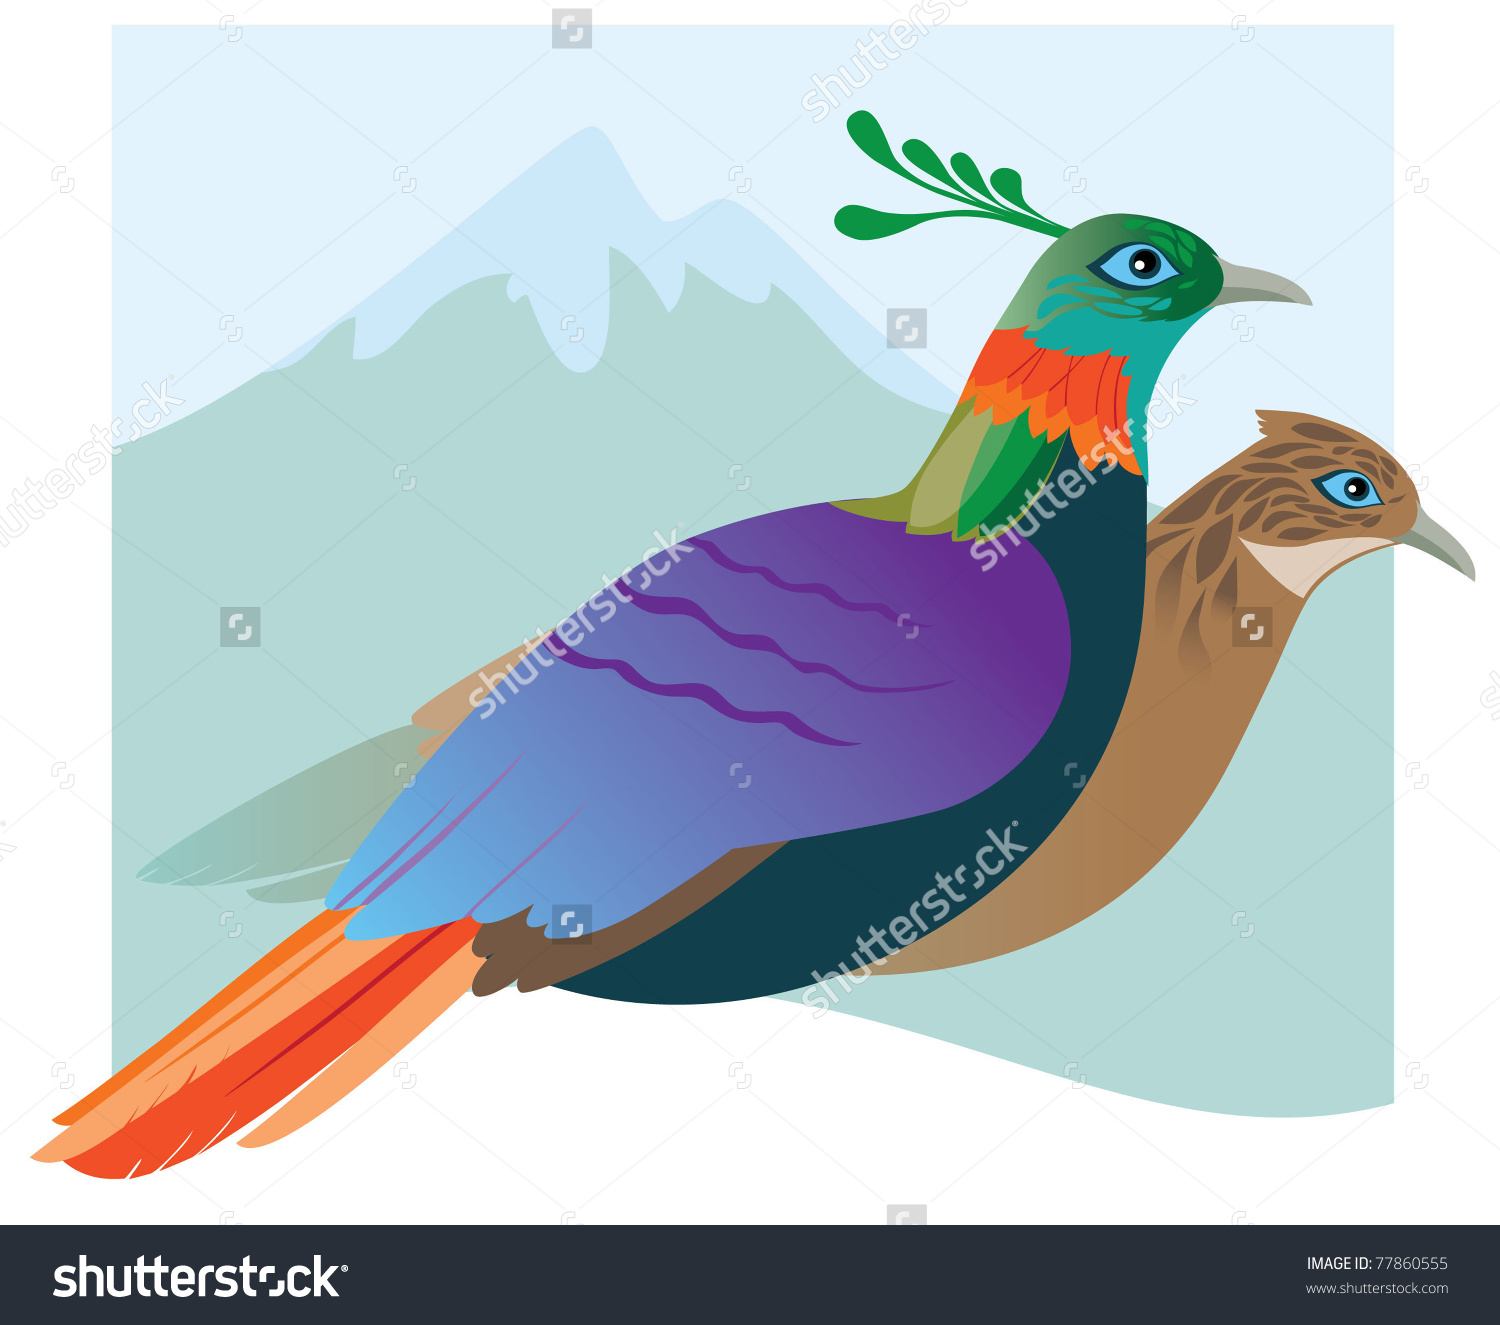 Himalayan Monal clipart #18, Download drawings